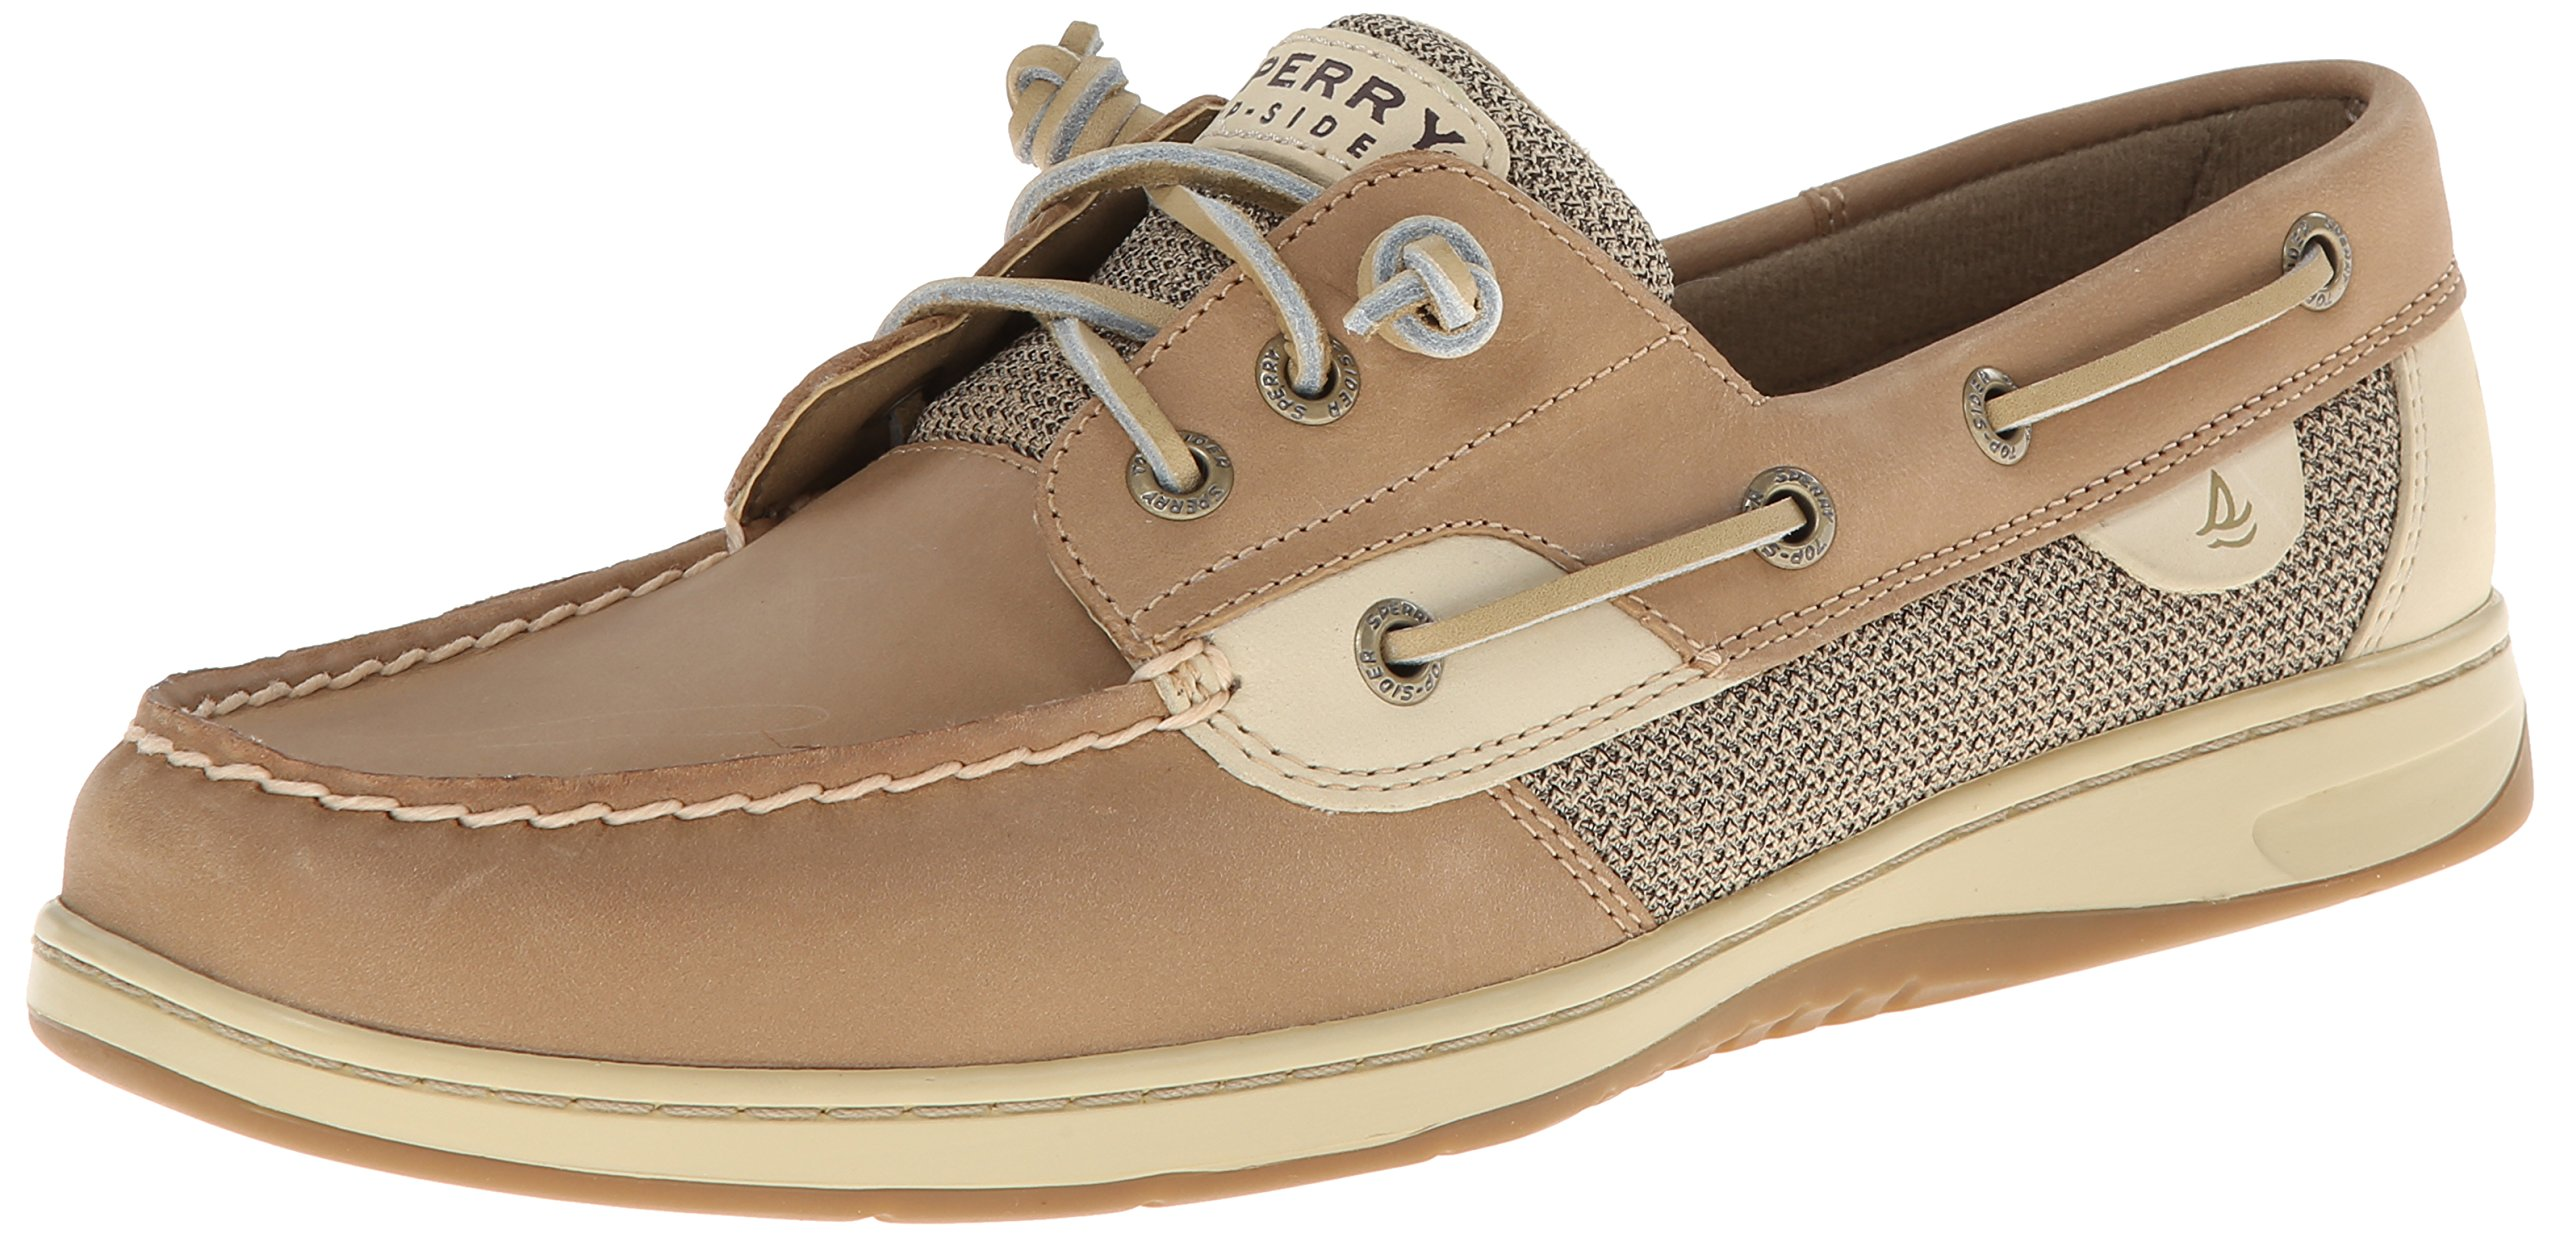 Sperry Top Sider Women S Ivyfish Boat Shoe